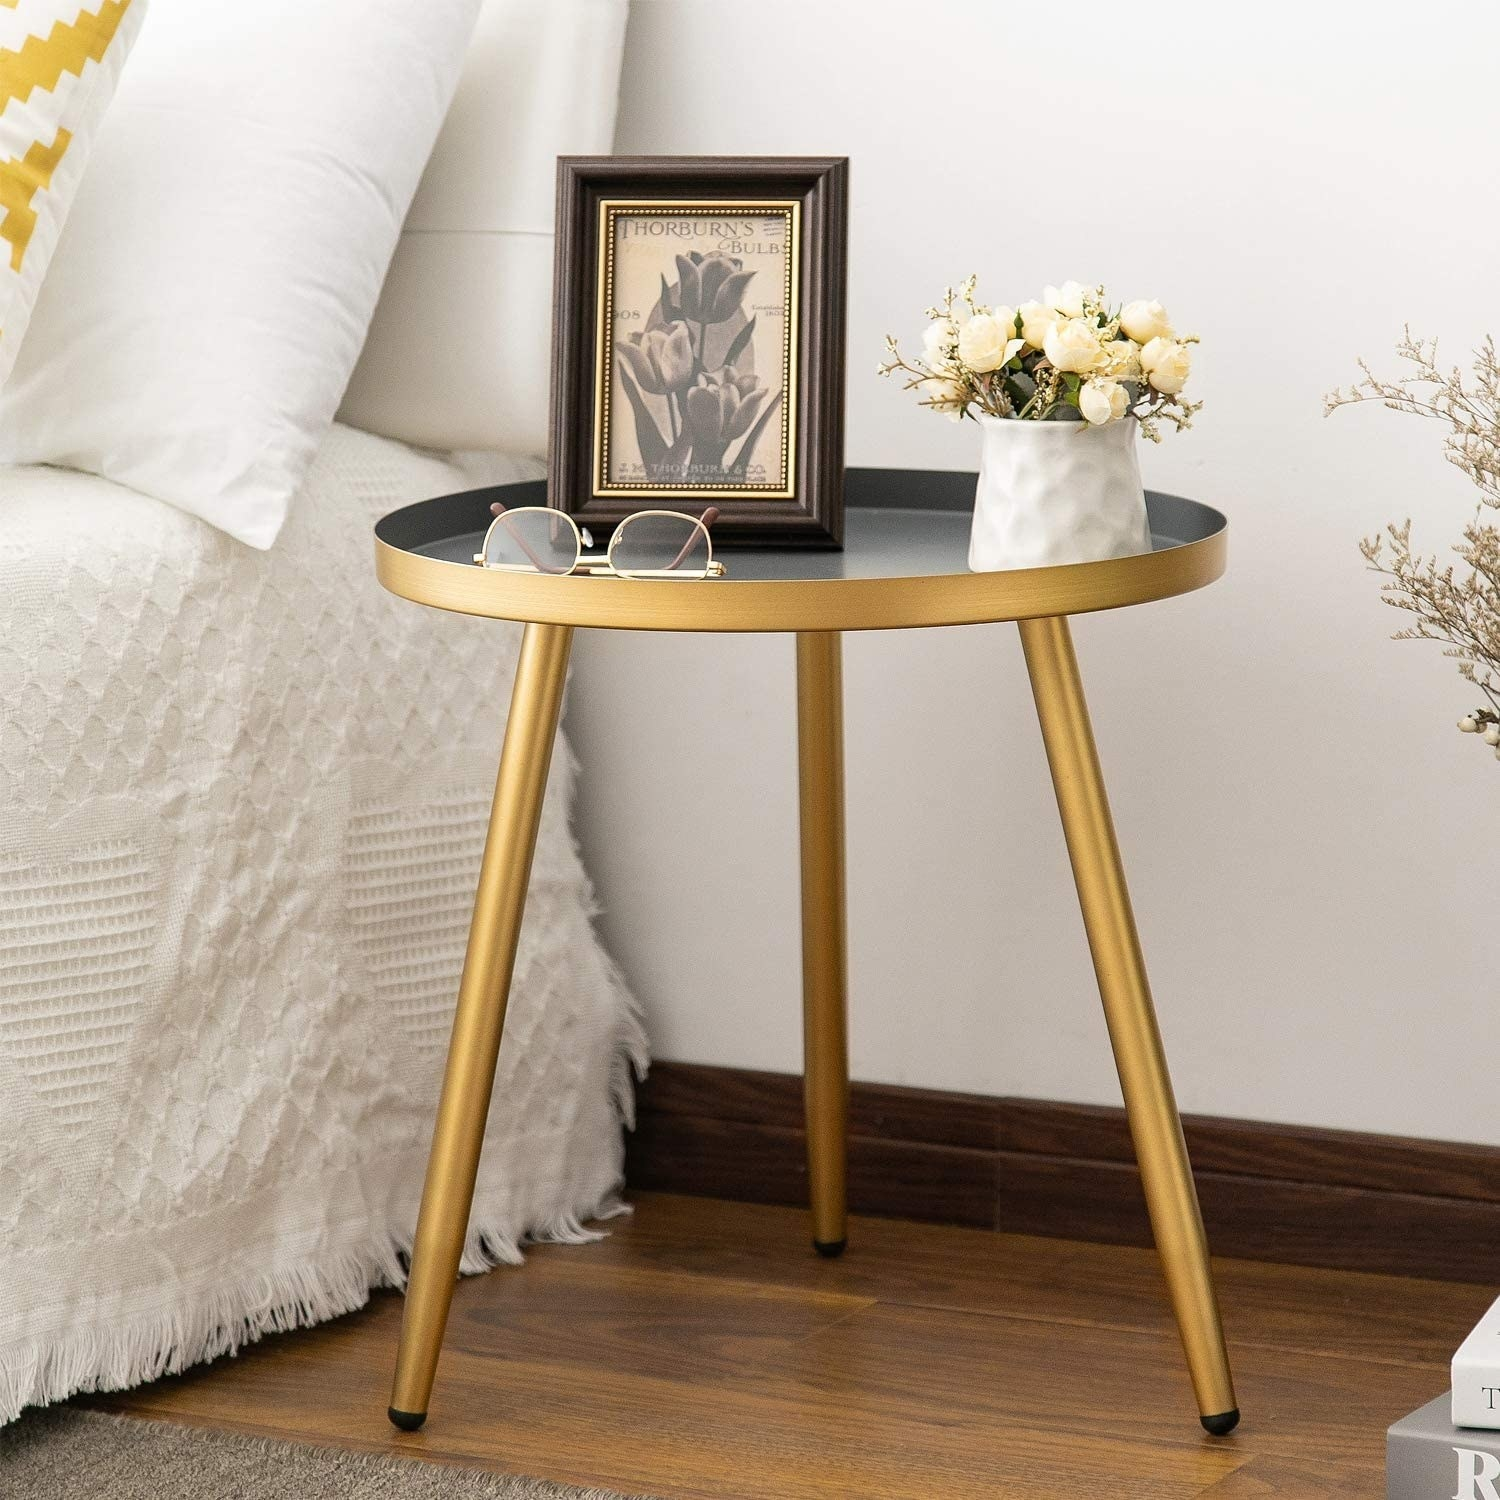 The circular table in a gold metallic tone holding a small flower pot, glasses, and a photo frame